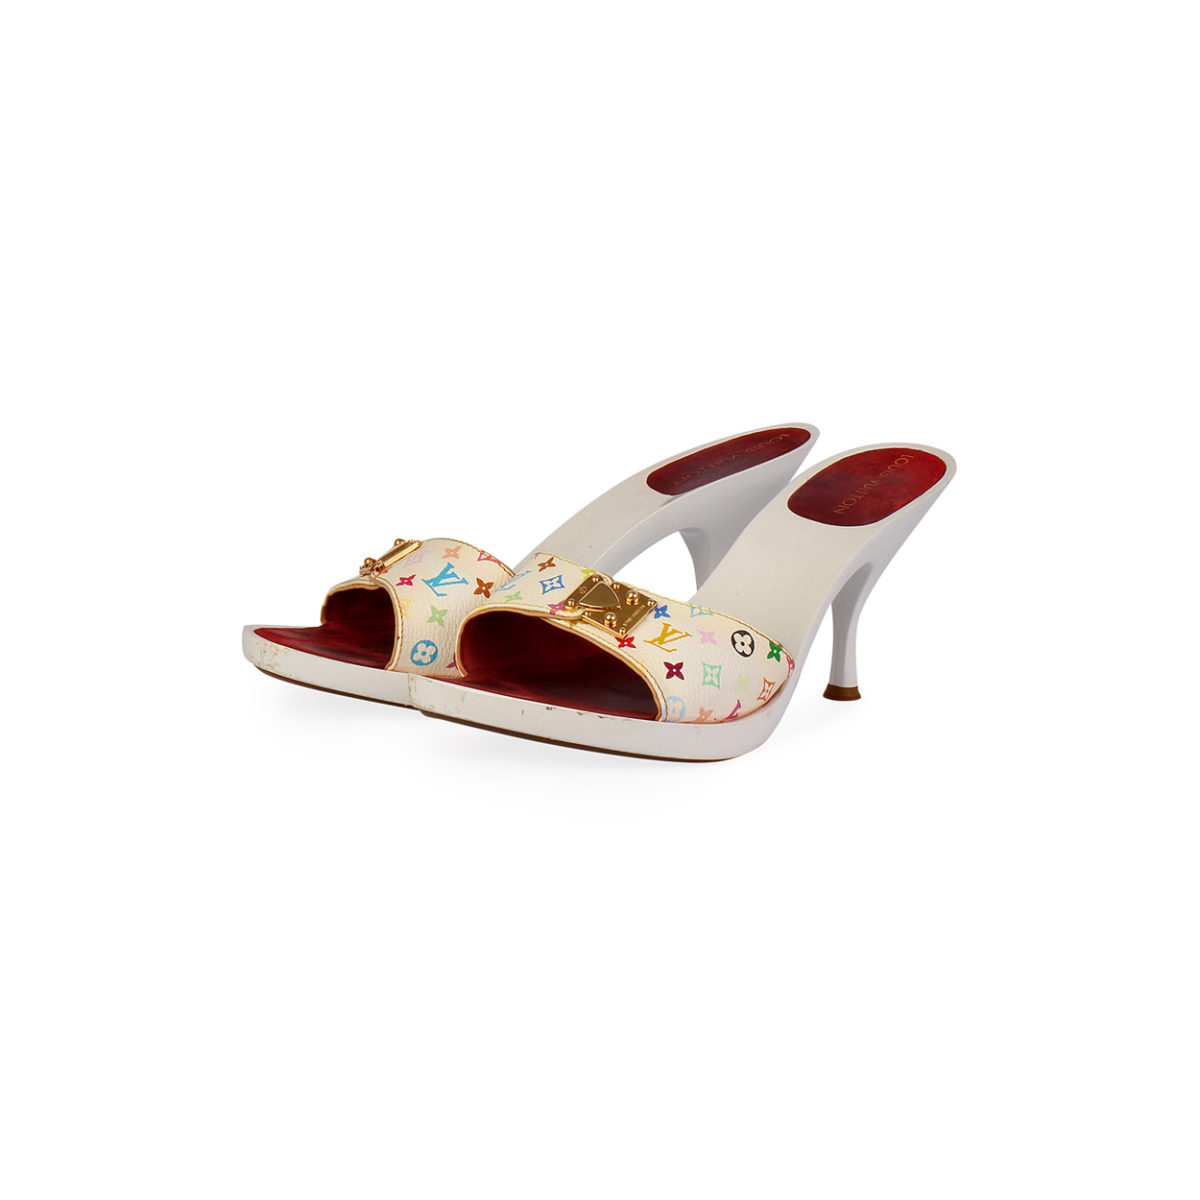 4c0efa25835 LOUIS VUITTON Multicolor Slide Kitten Heel Sandals – S  41 (7.5 ...